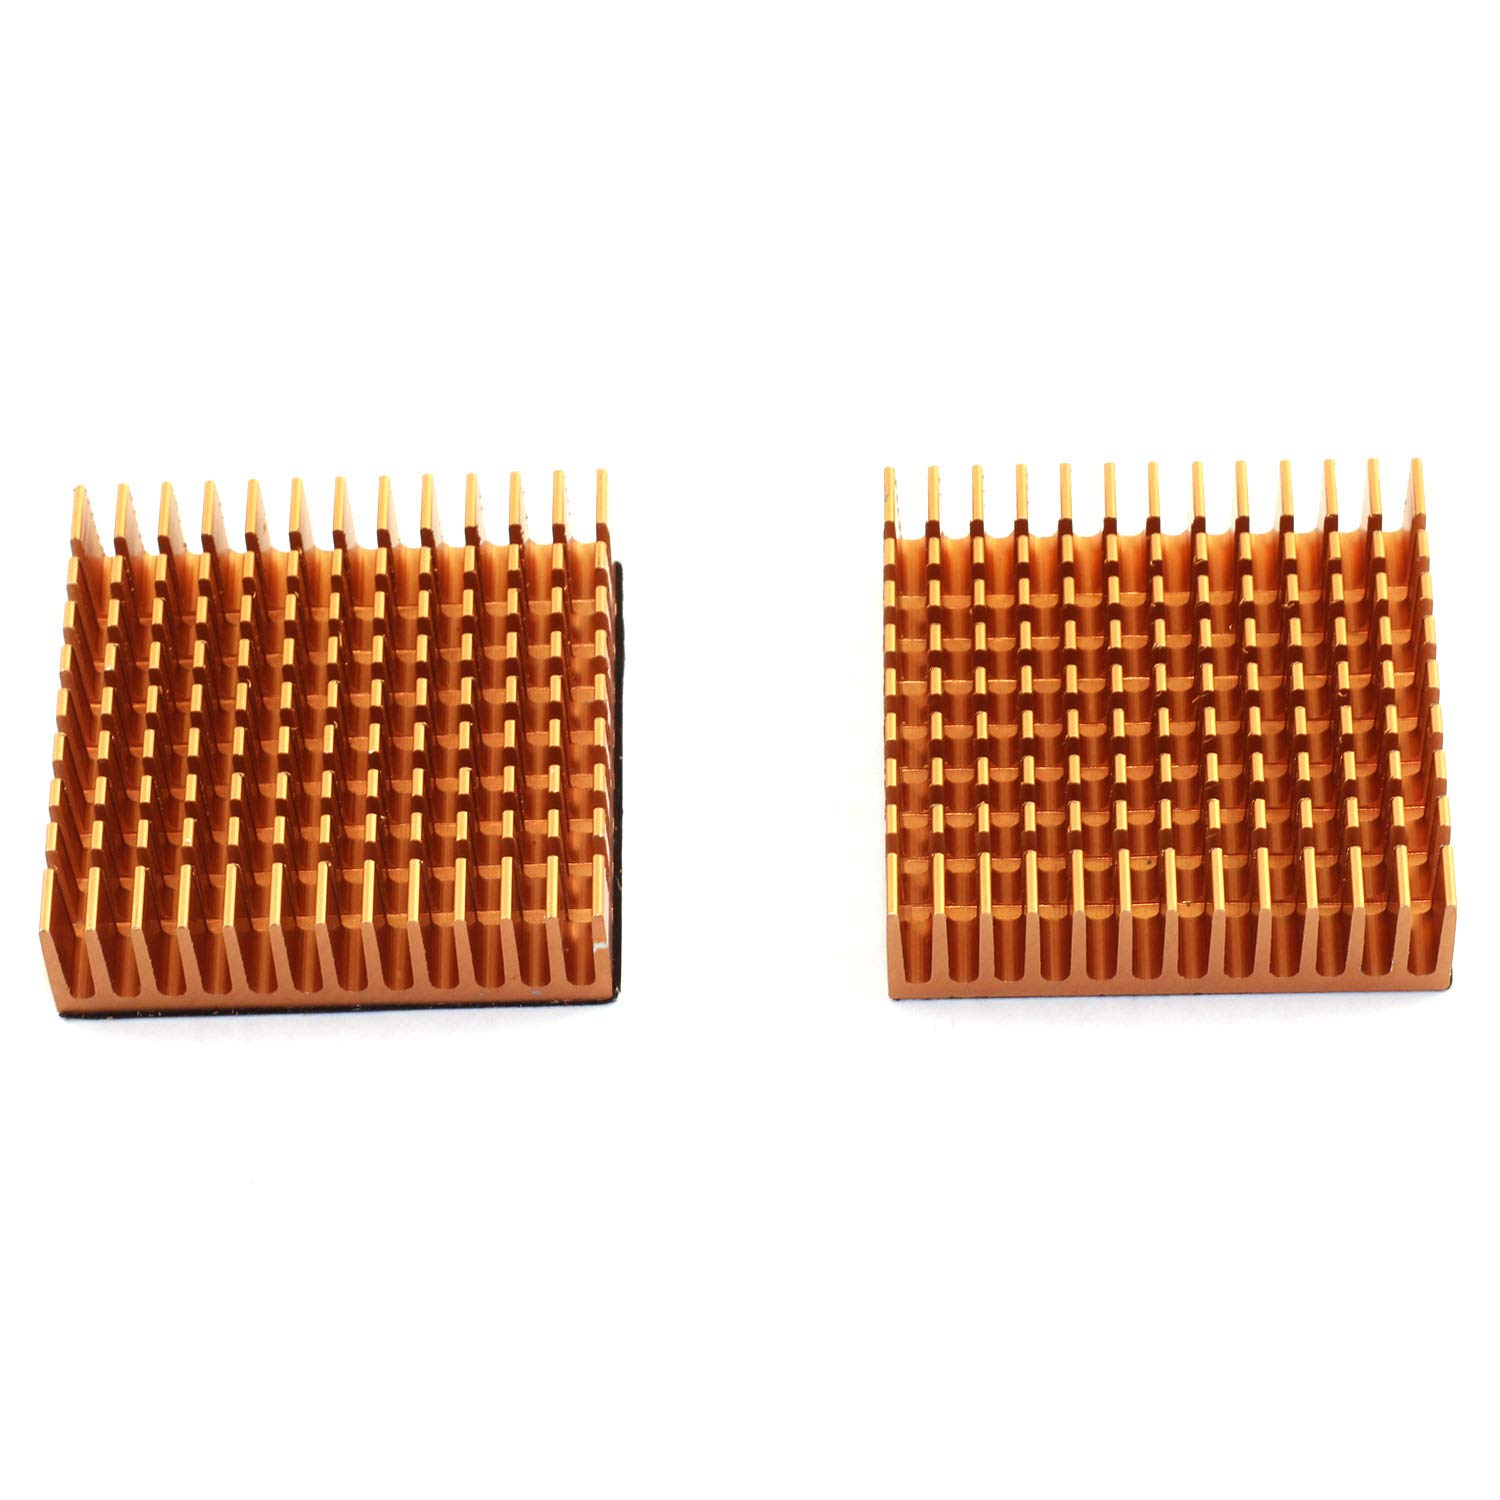 DGZZI 2PCS Golden Aluminum Heatsink 40x40x11mm Square CPU Heat Sinks Cooling Cooler Fin with 2PCS 3M Silicone Based Thermal Pad